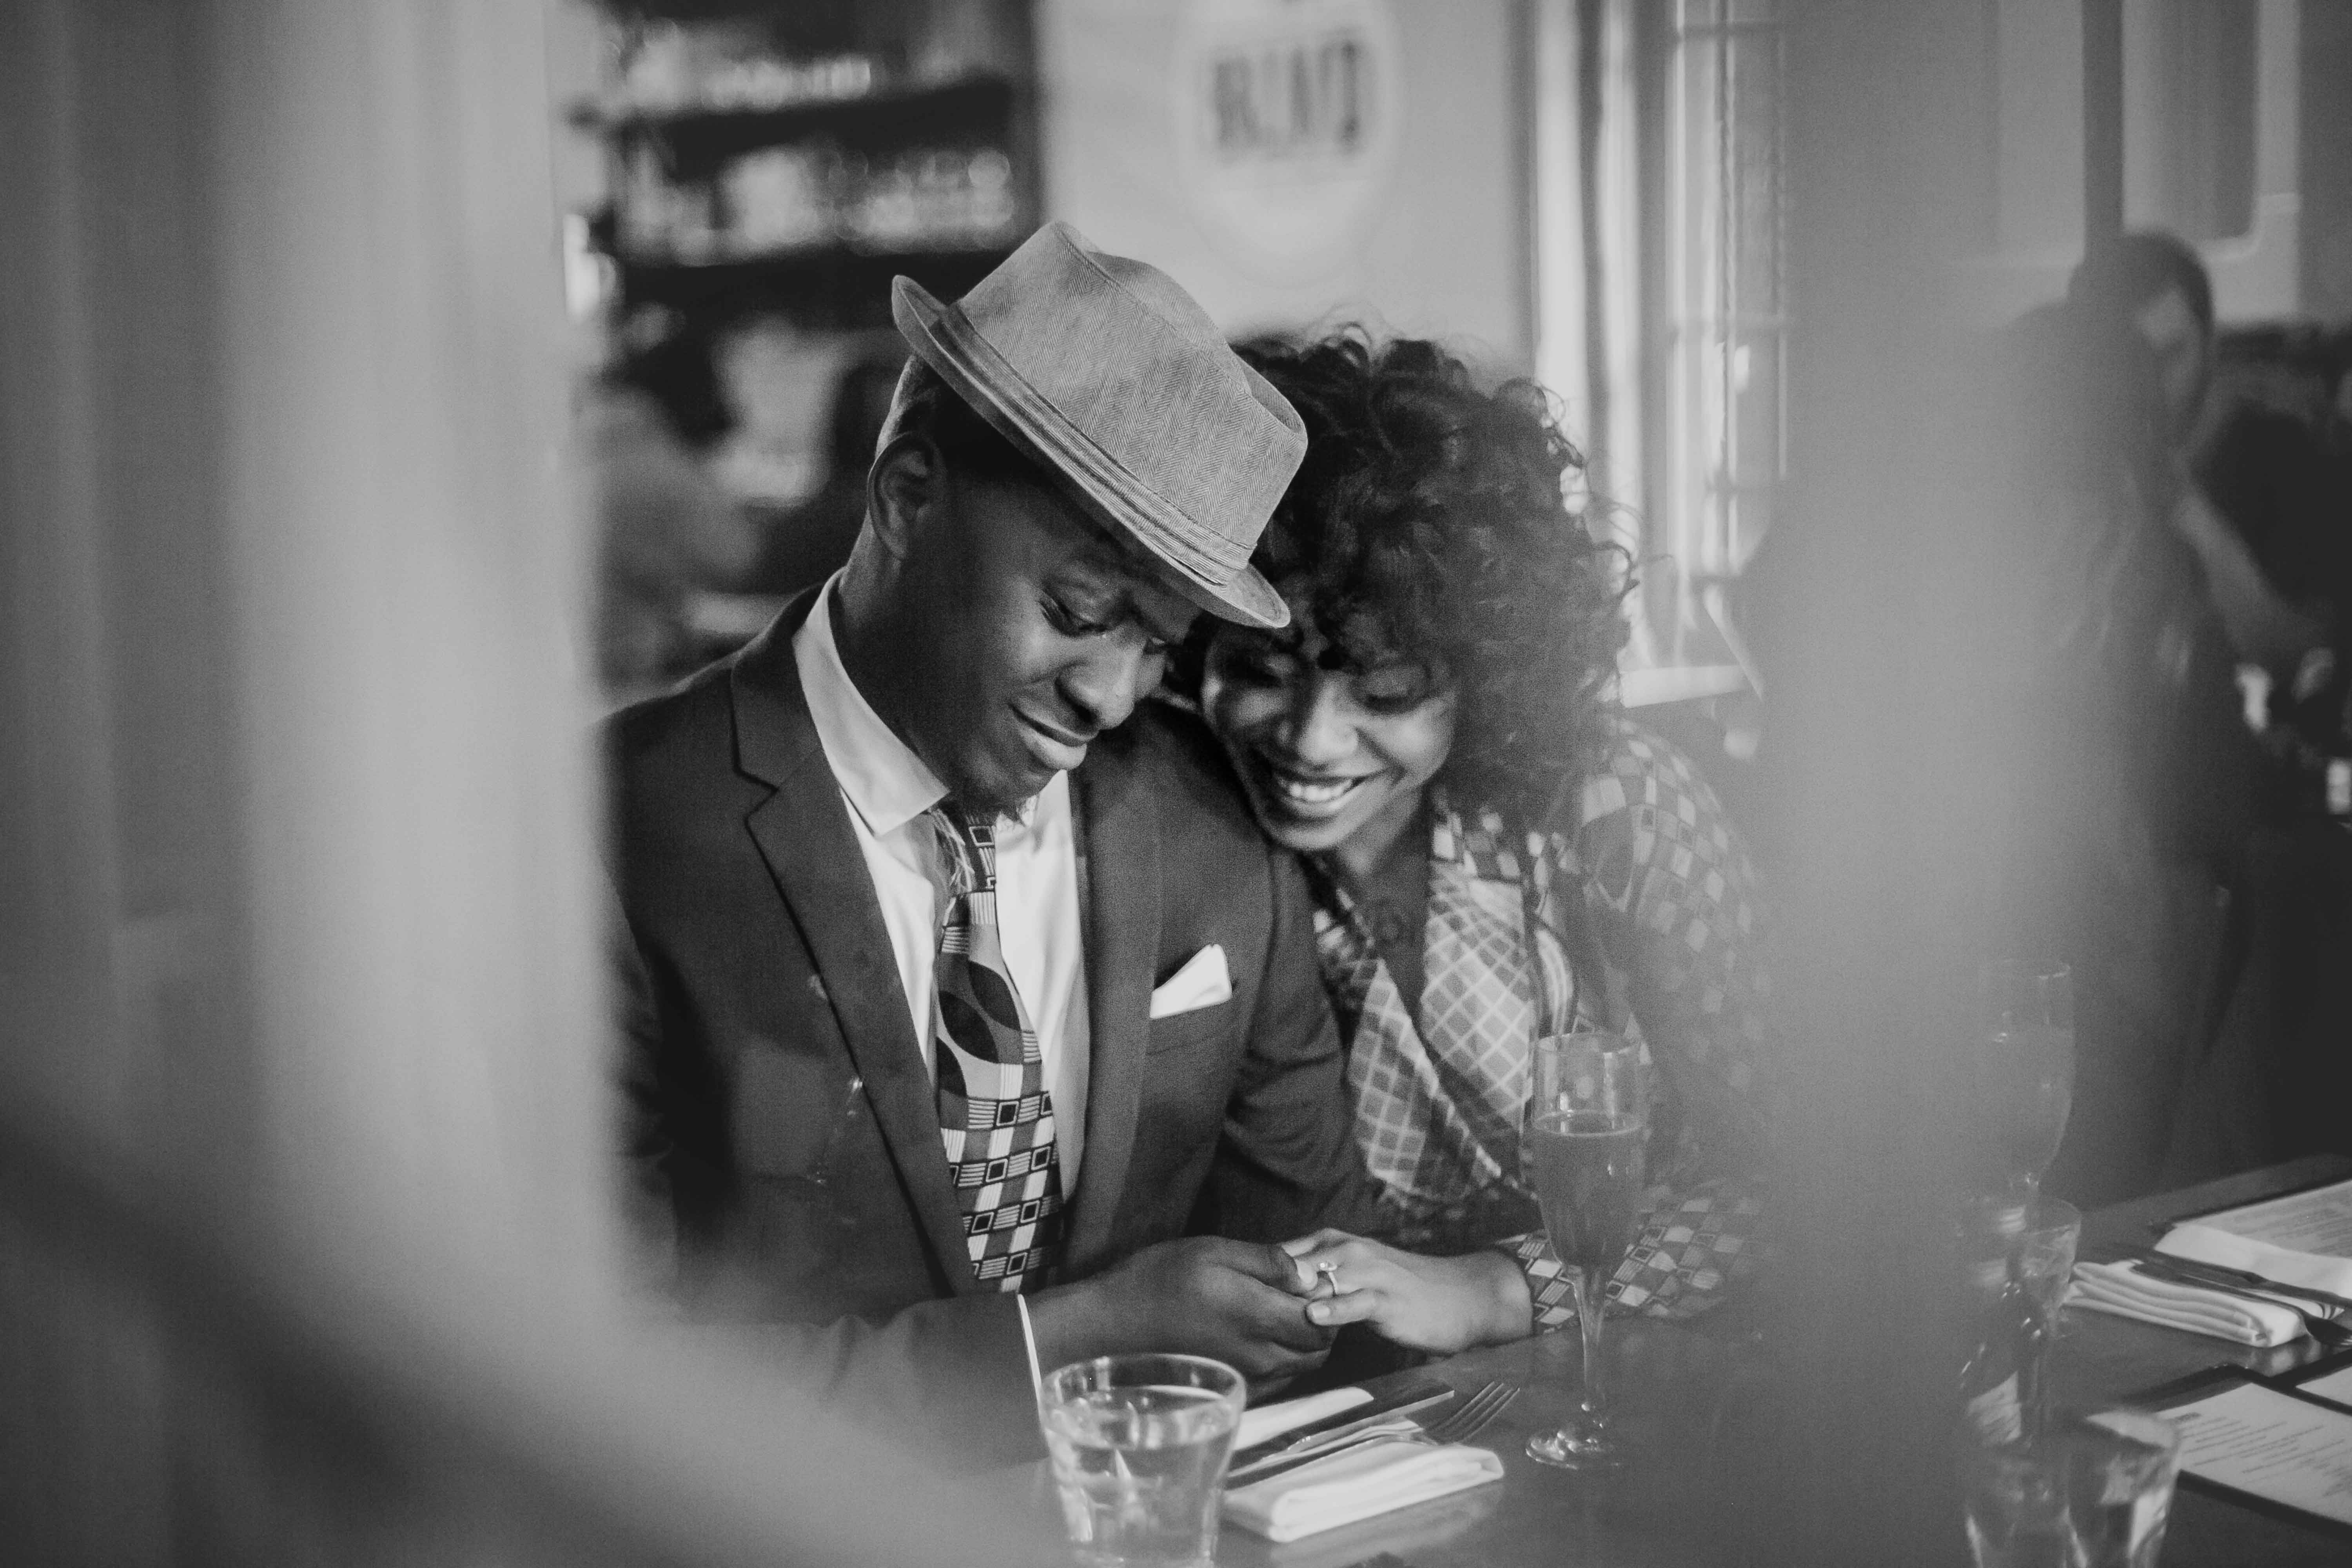 Black and white engagement session photo at restaurant through window couple looks at engagement ring